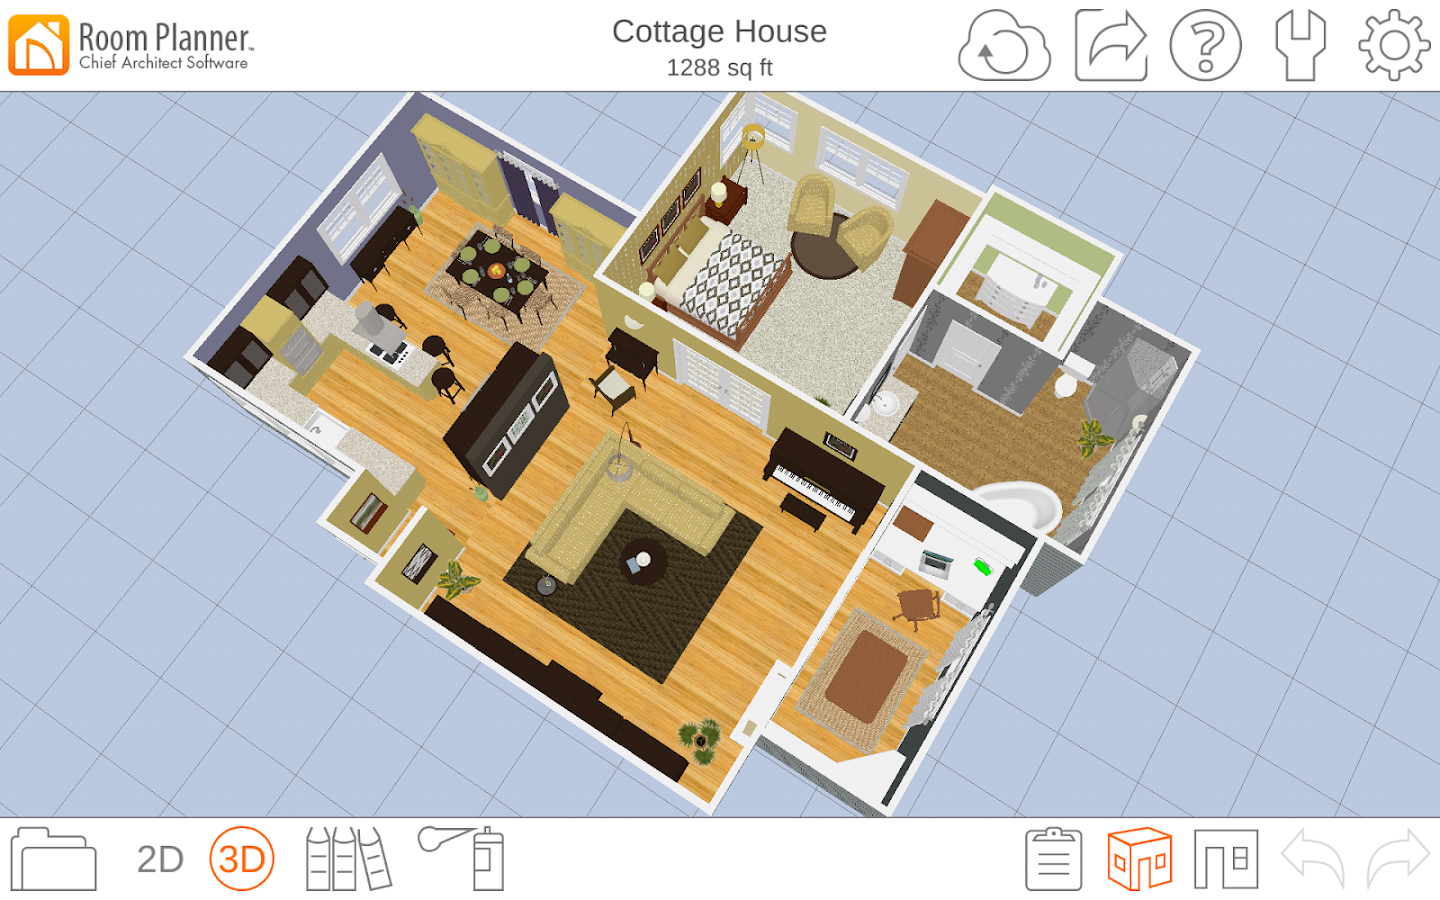 Room planner home design android apps on google play Create house floor plans free